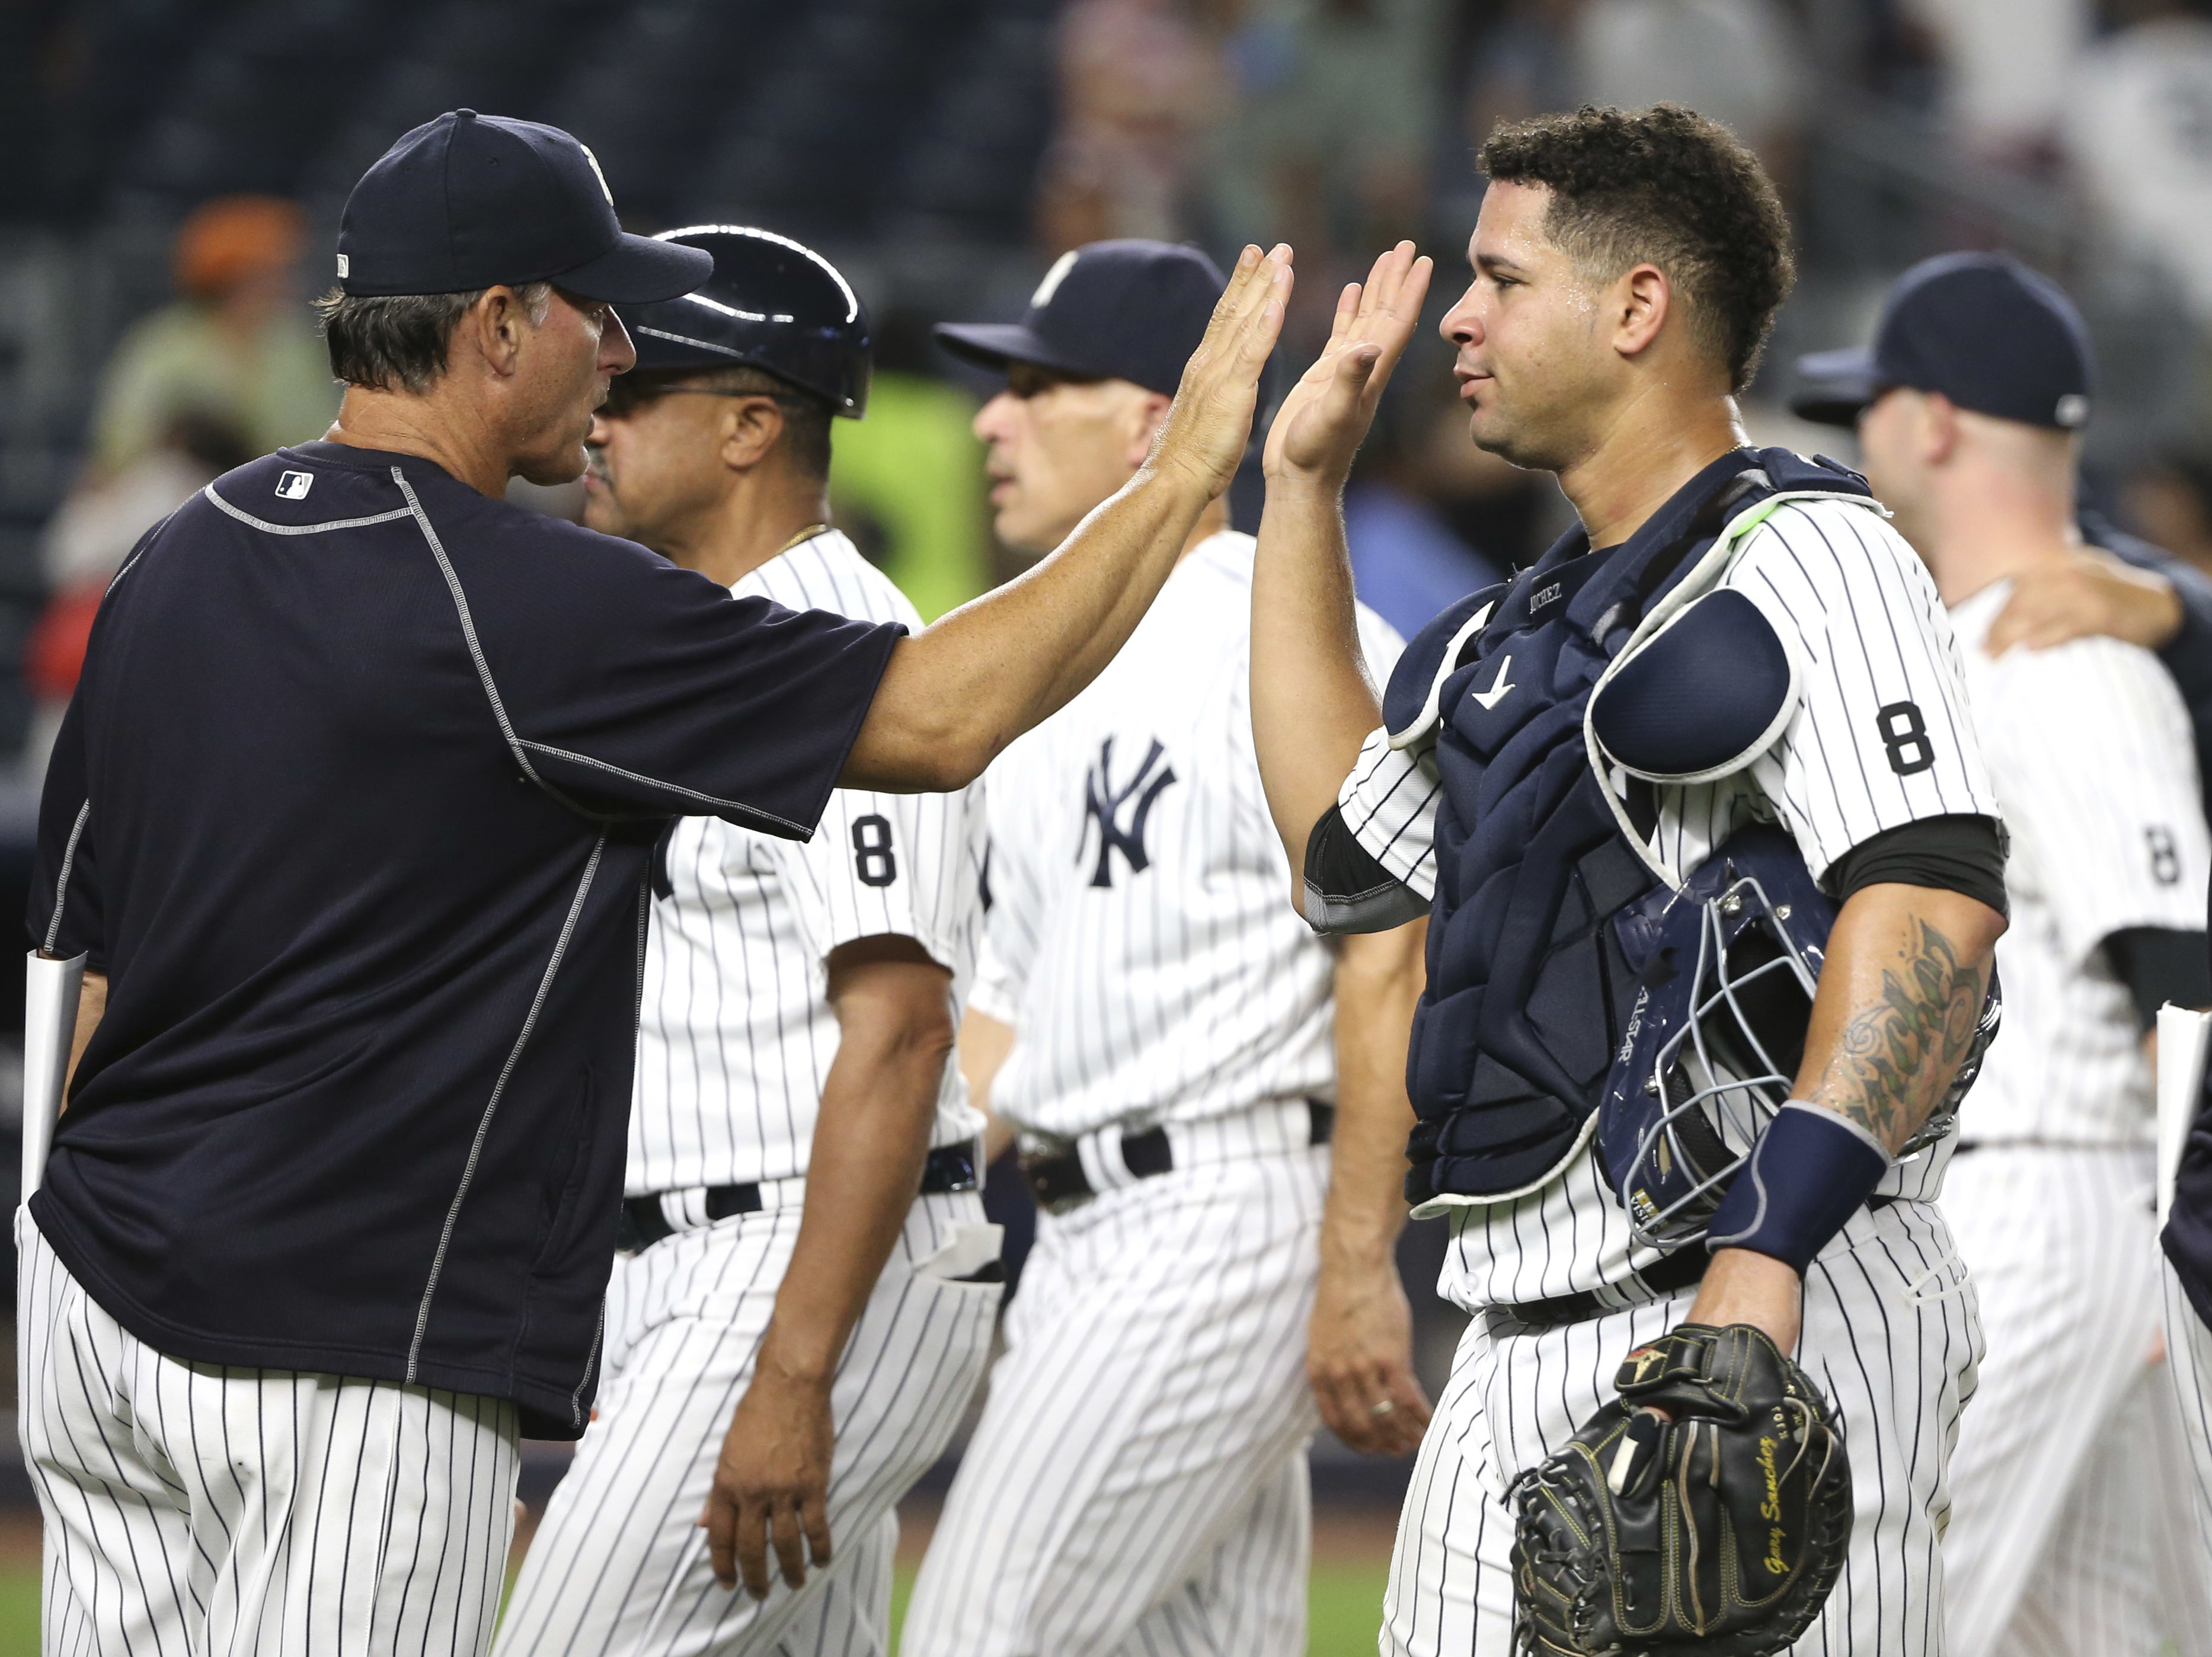 New York Yankees catcher Gary Sanchez, right, celebrates with teammates after the Yankees defeated the Cleveland Indians 13-7 in a baseball game Friday, Aug. 5, 2016 in New York. (AP Photo/Seth Wenig)